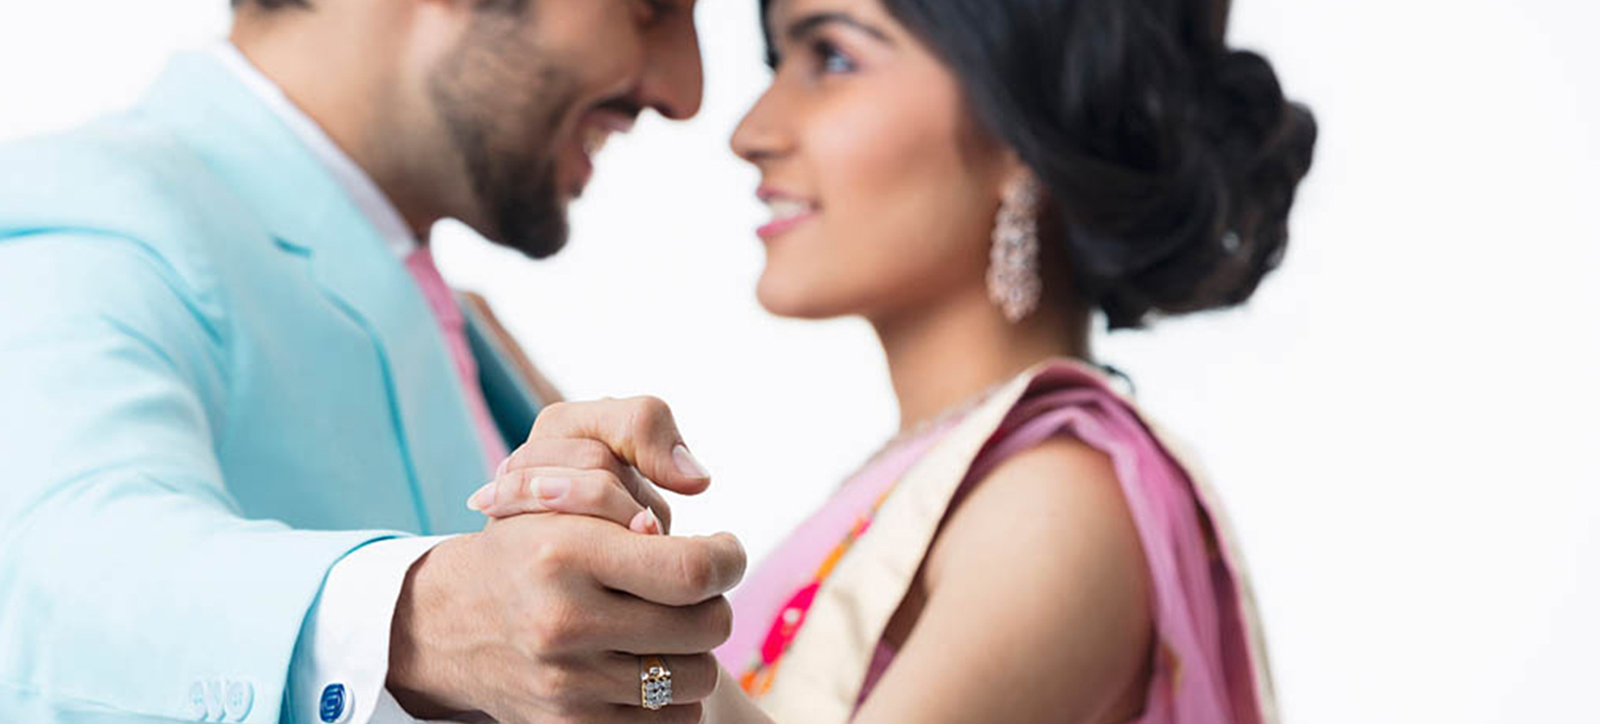 Sikh matchmaking services